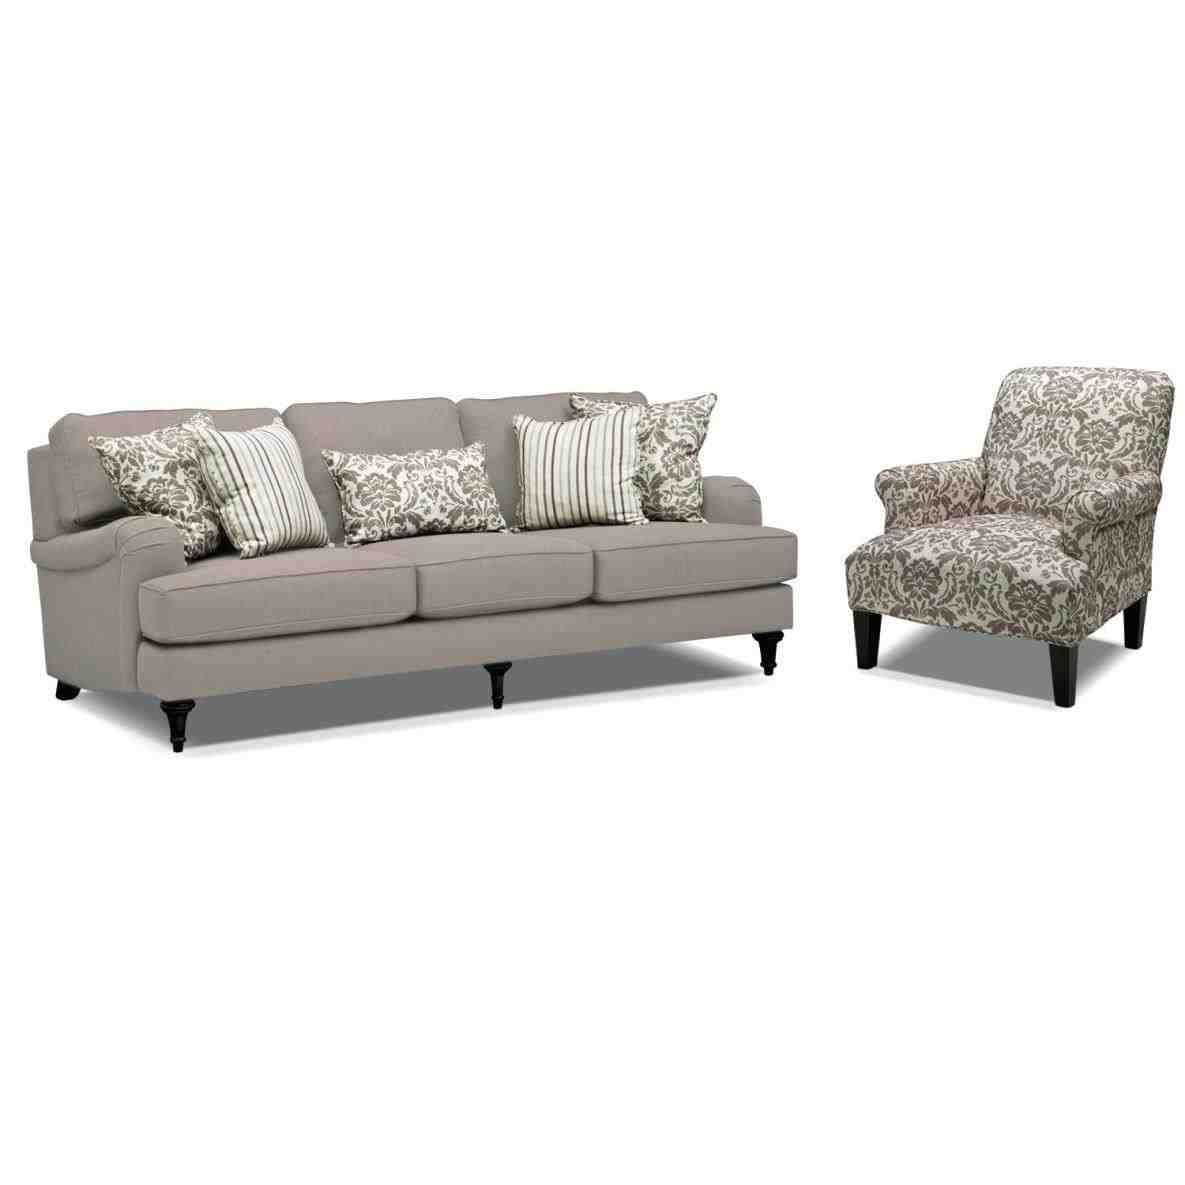 Cheap Sofa And Chair Set Sofa Set Designs And Prices Gray Cheap Living Living Room Black And Red Living Room Value City Furniture Furniture City Furniture